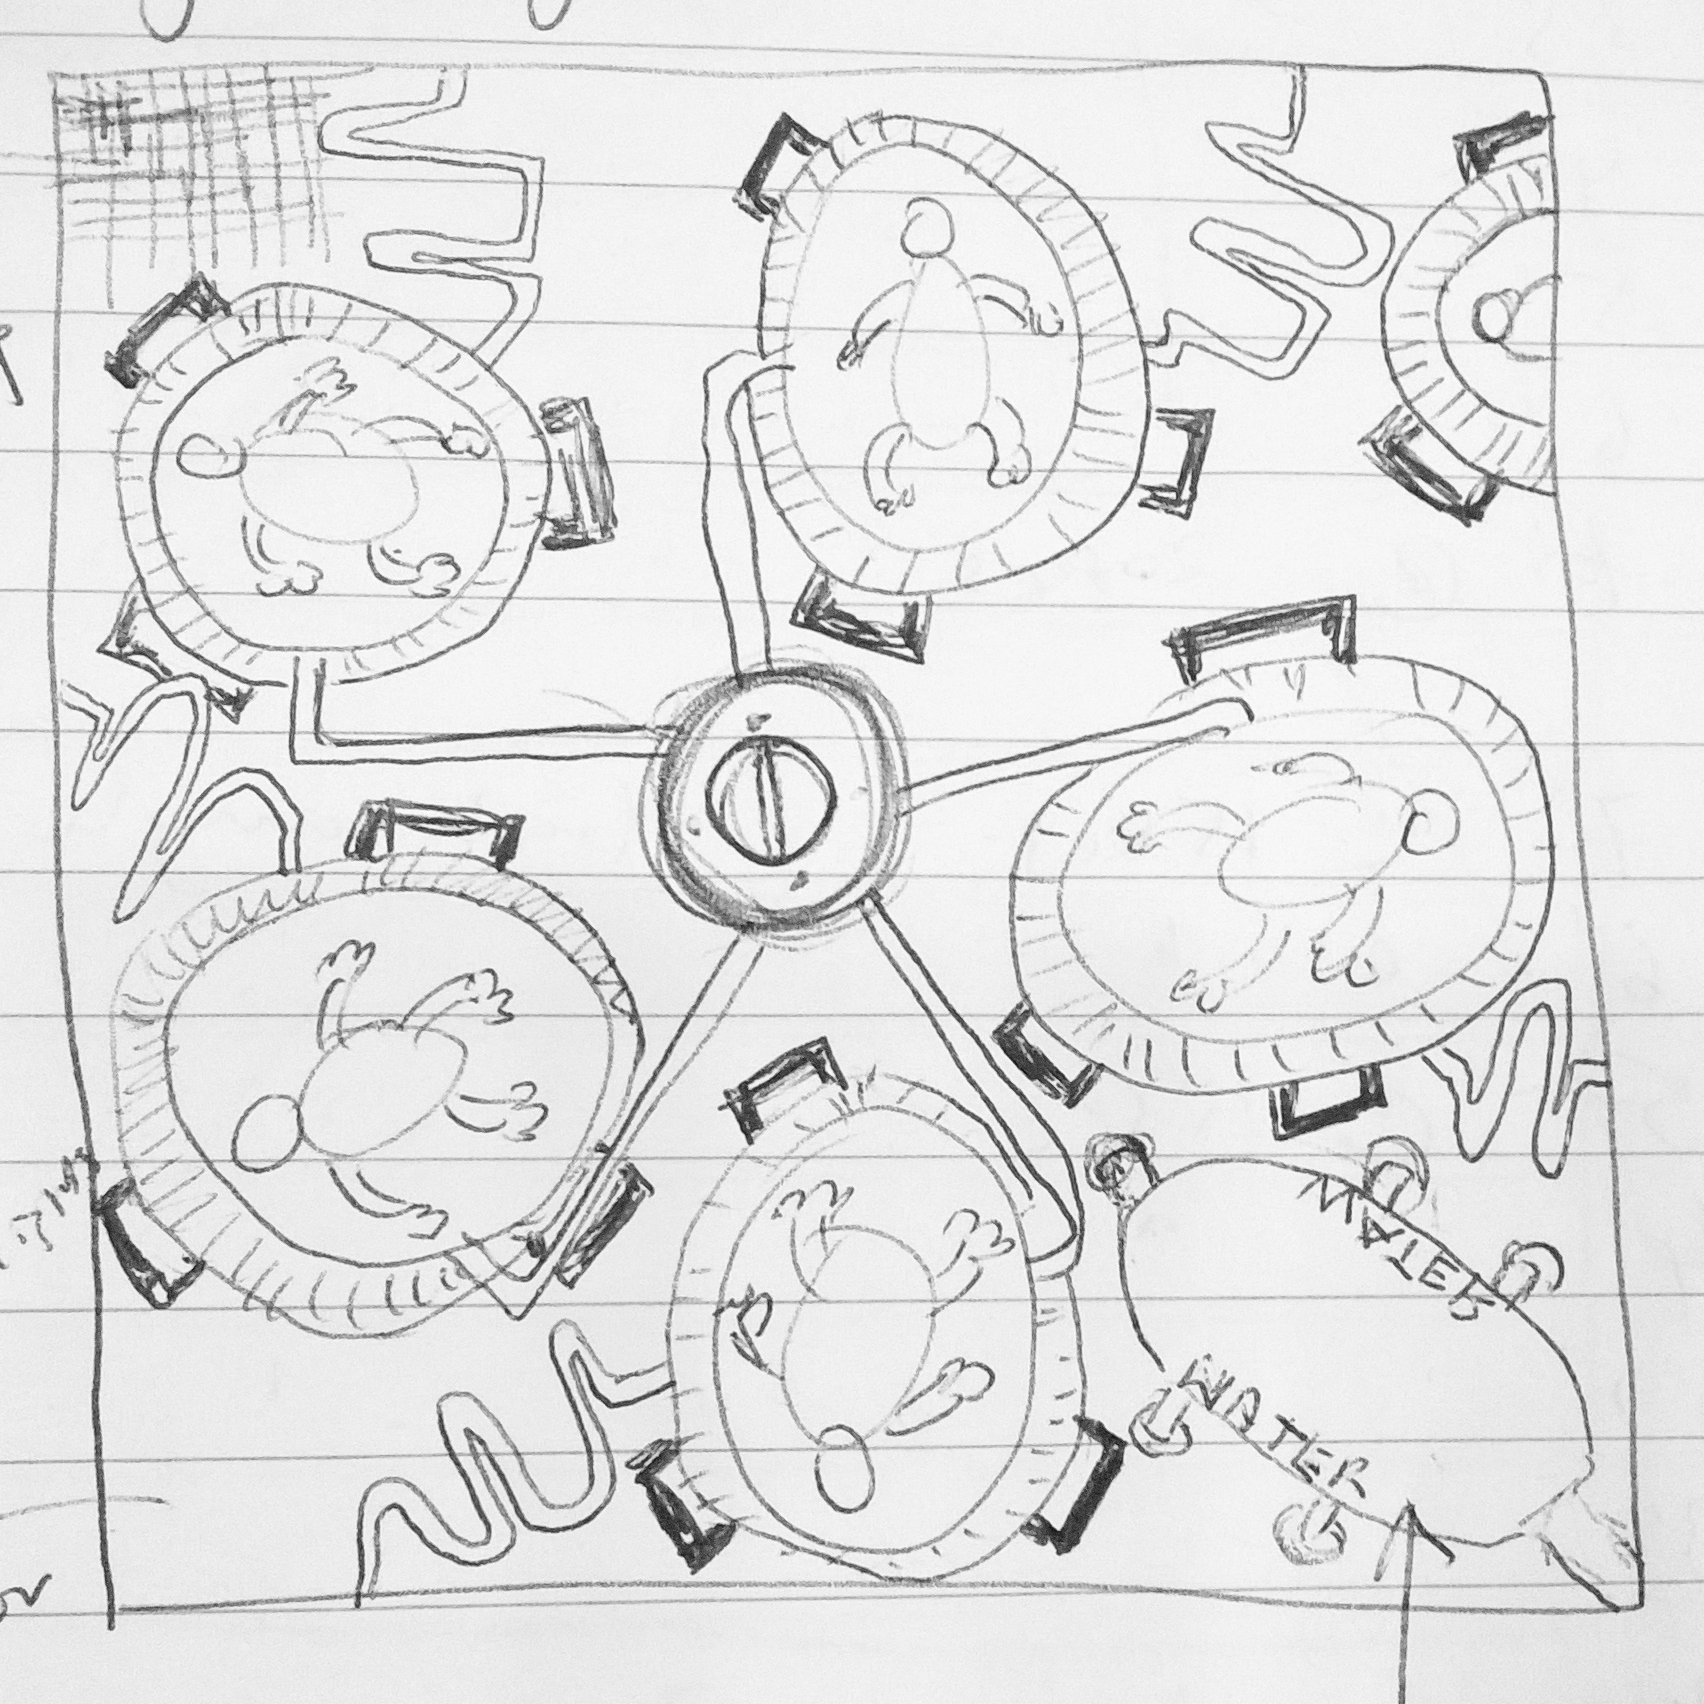 Soup of Dolls, Toy Stories, preliminary sketck, 2017